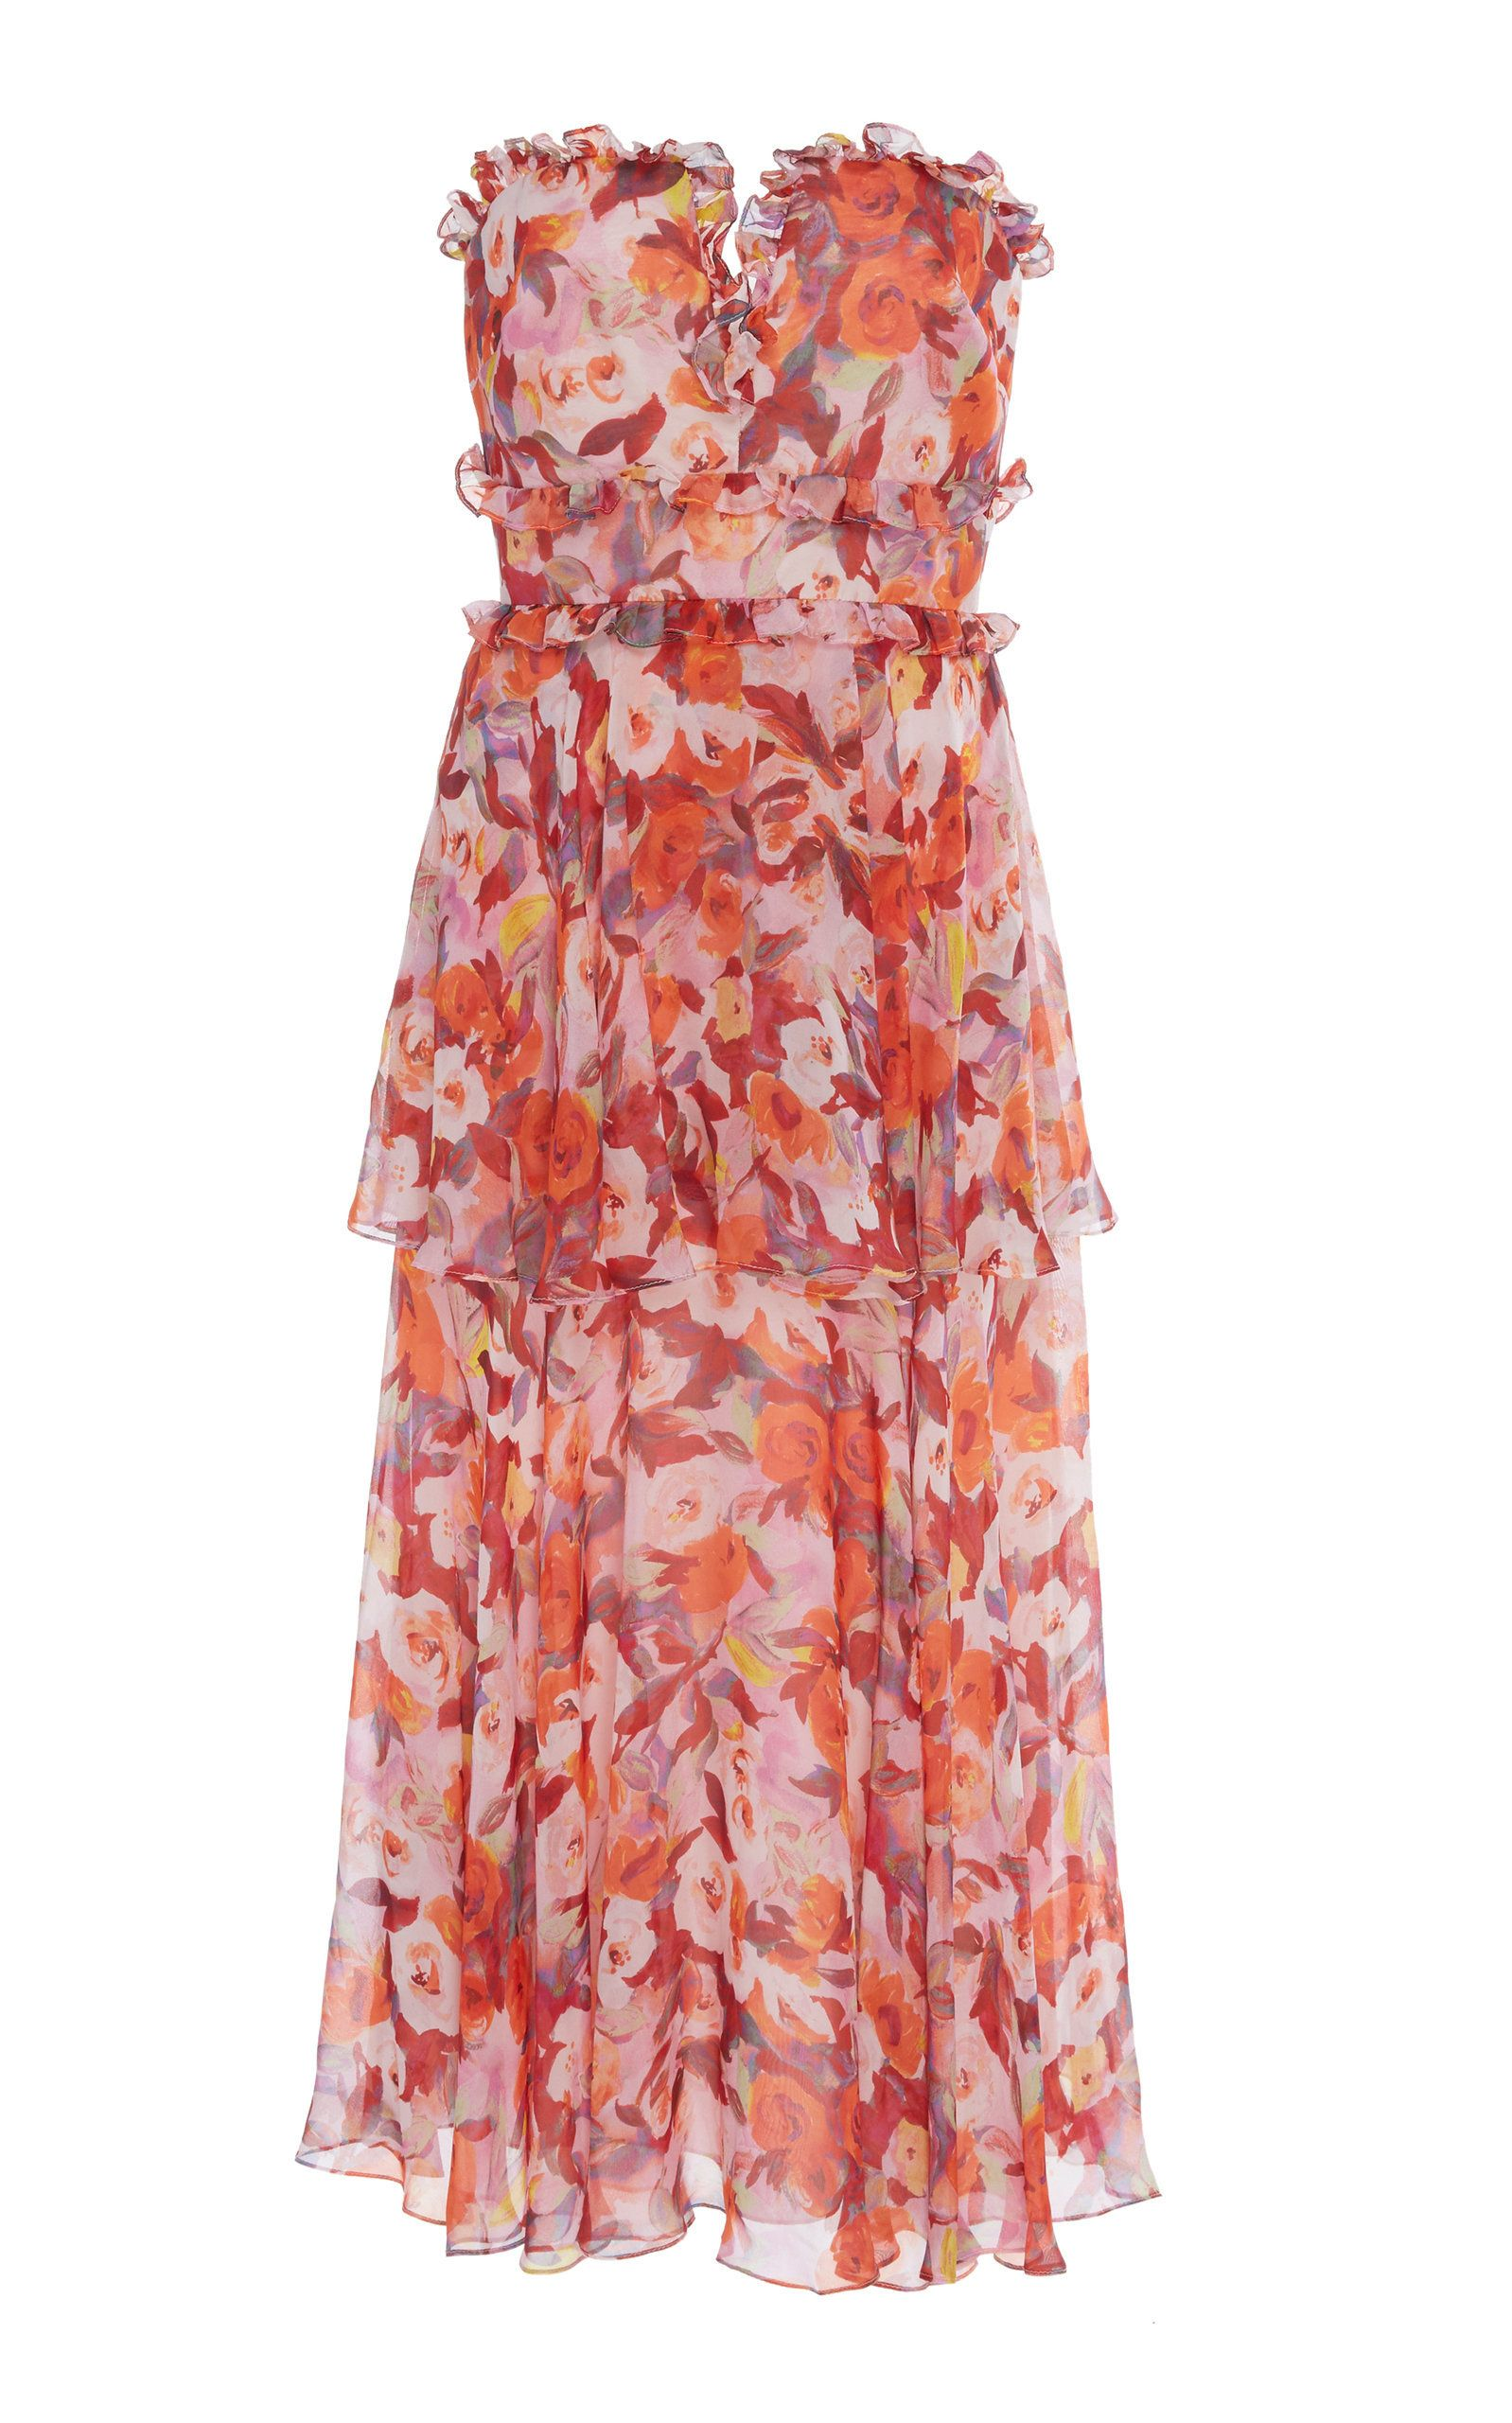 3c34525223 Click product to zoom Silk Floral Dress